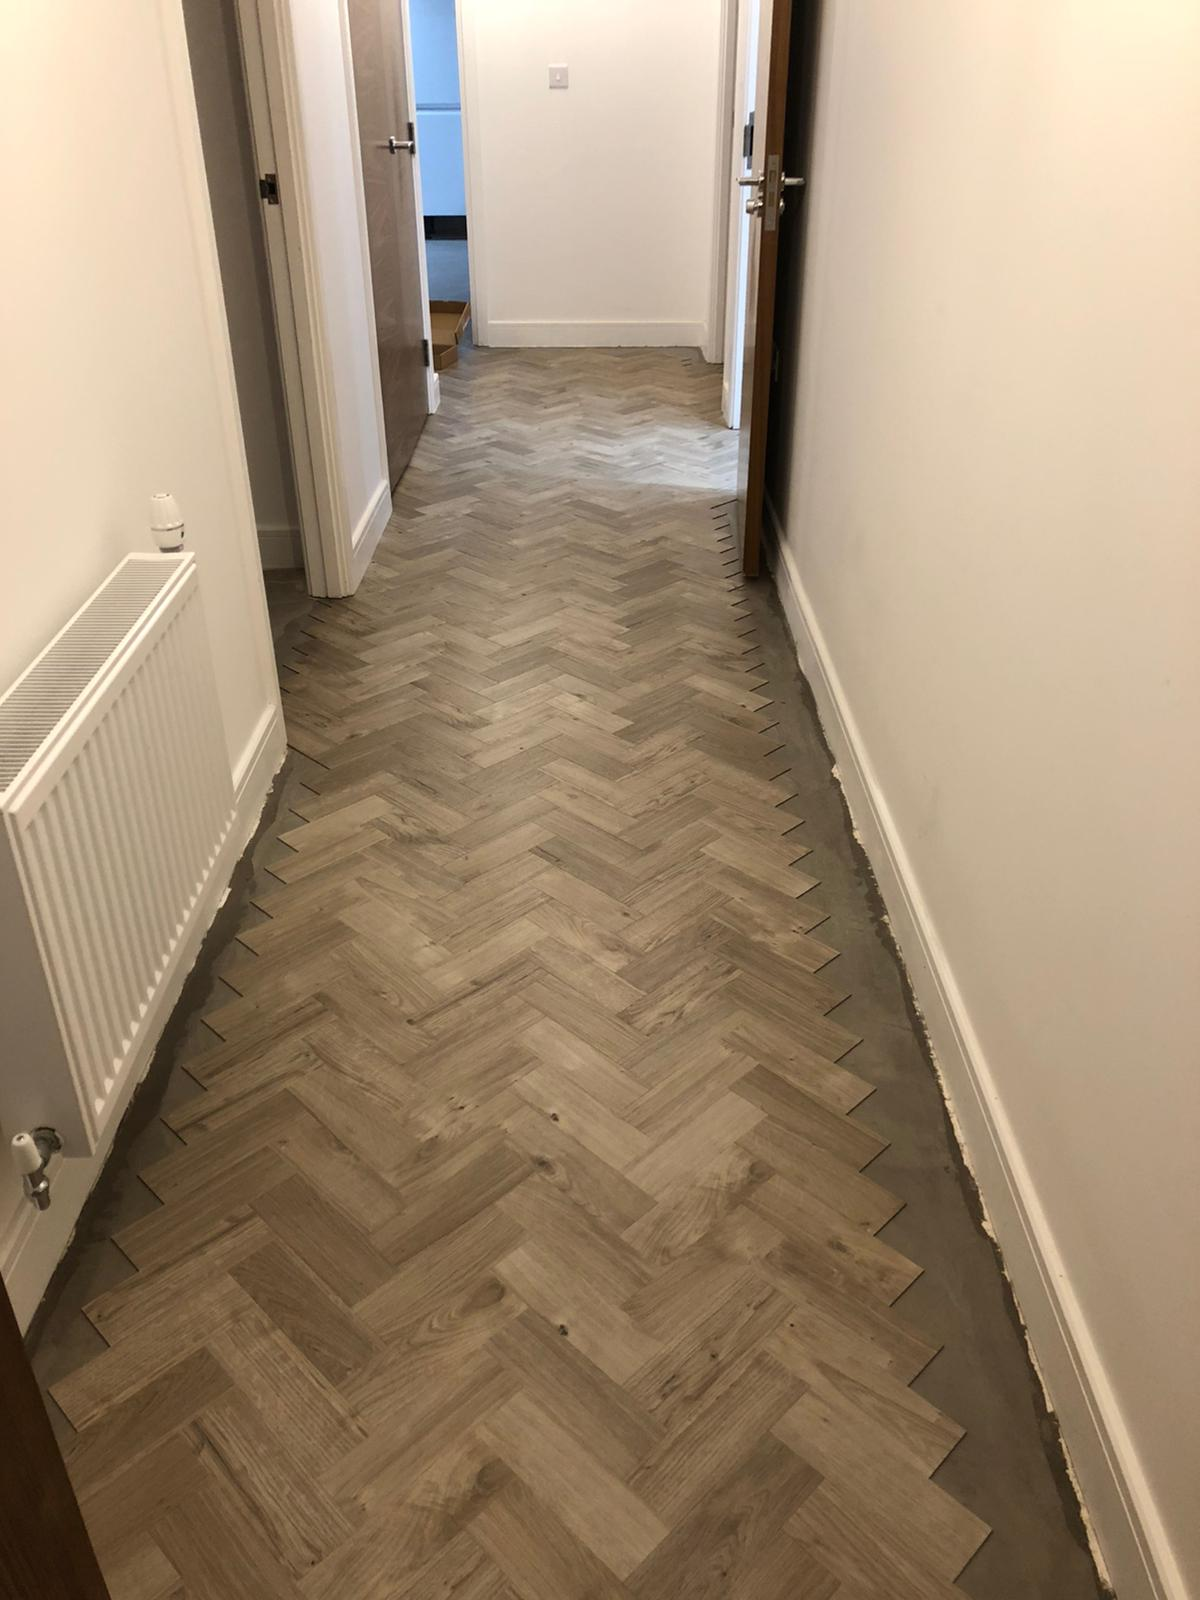 To supply & install Amtico Spacia Sun Bleached Oak luxury vinyl flooring in Kilburn 5